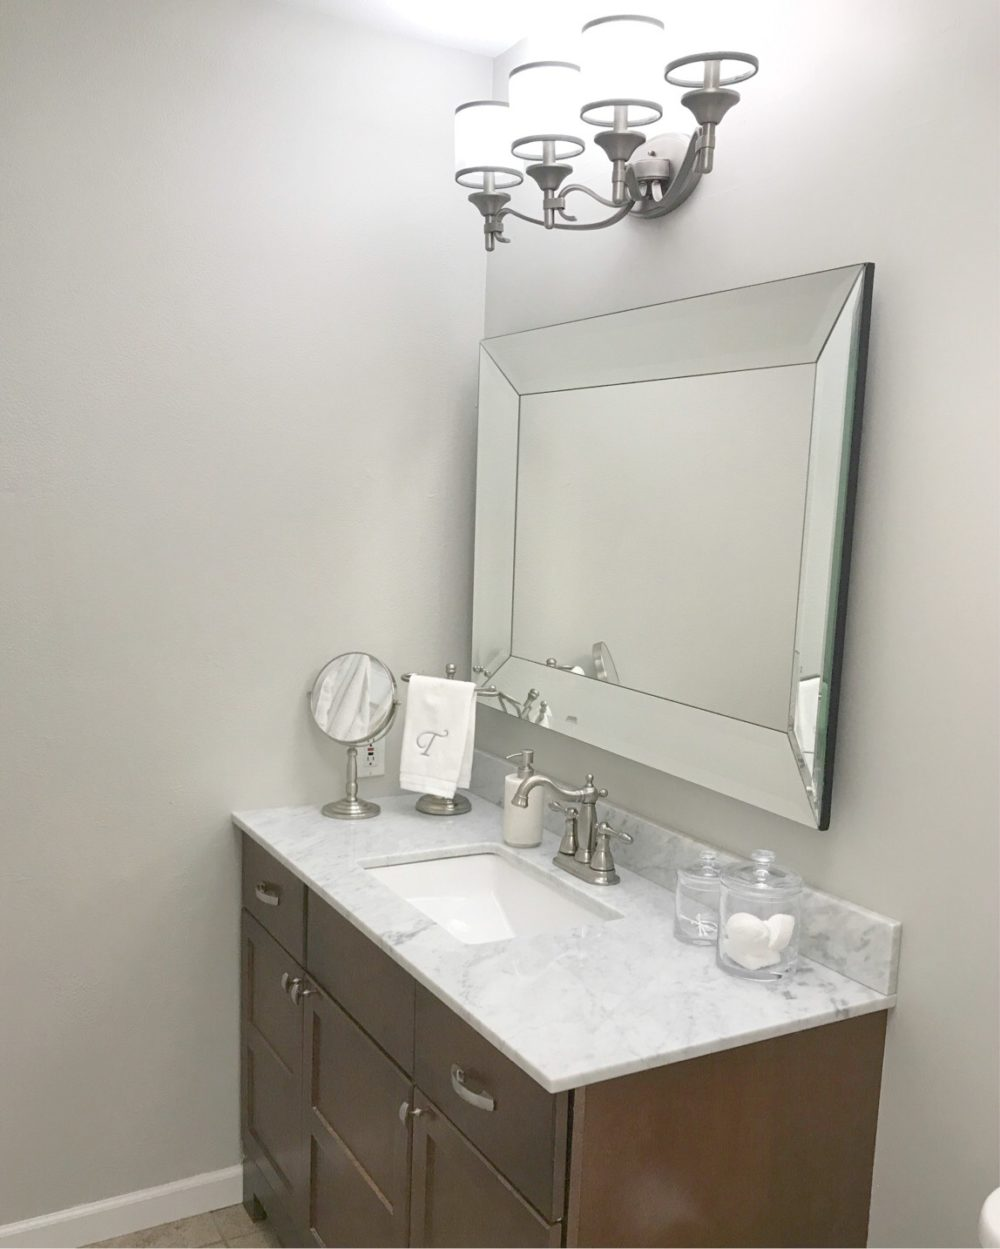 Small Master Bath Ideas. Before and After - Repose Gray by Sherwin Williams - A Cup Gull of Sass